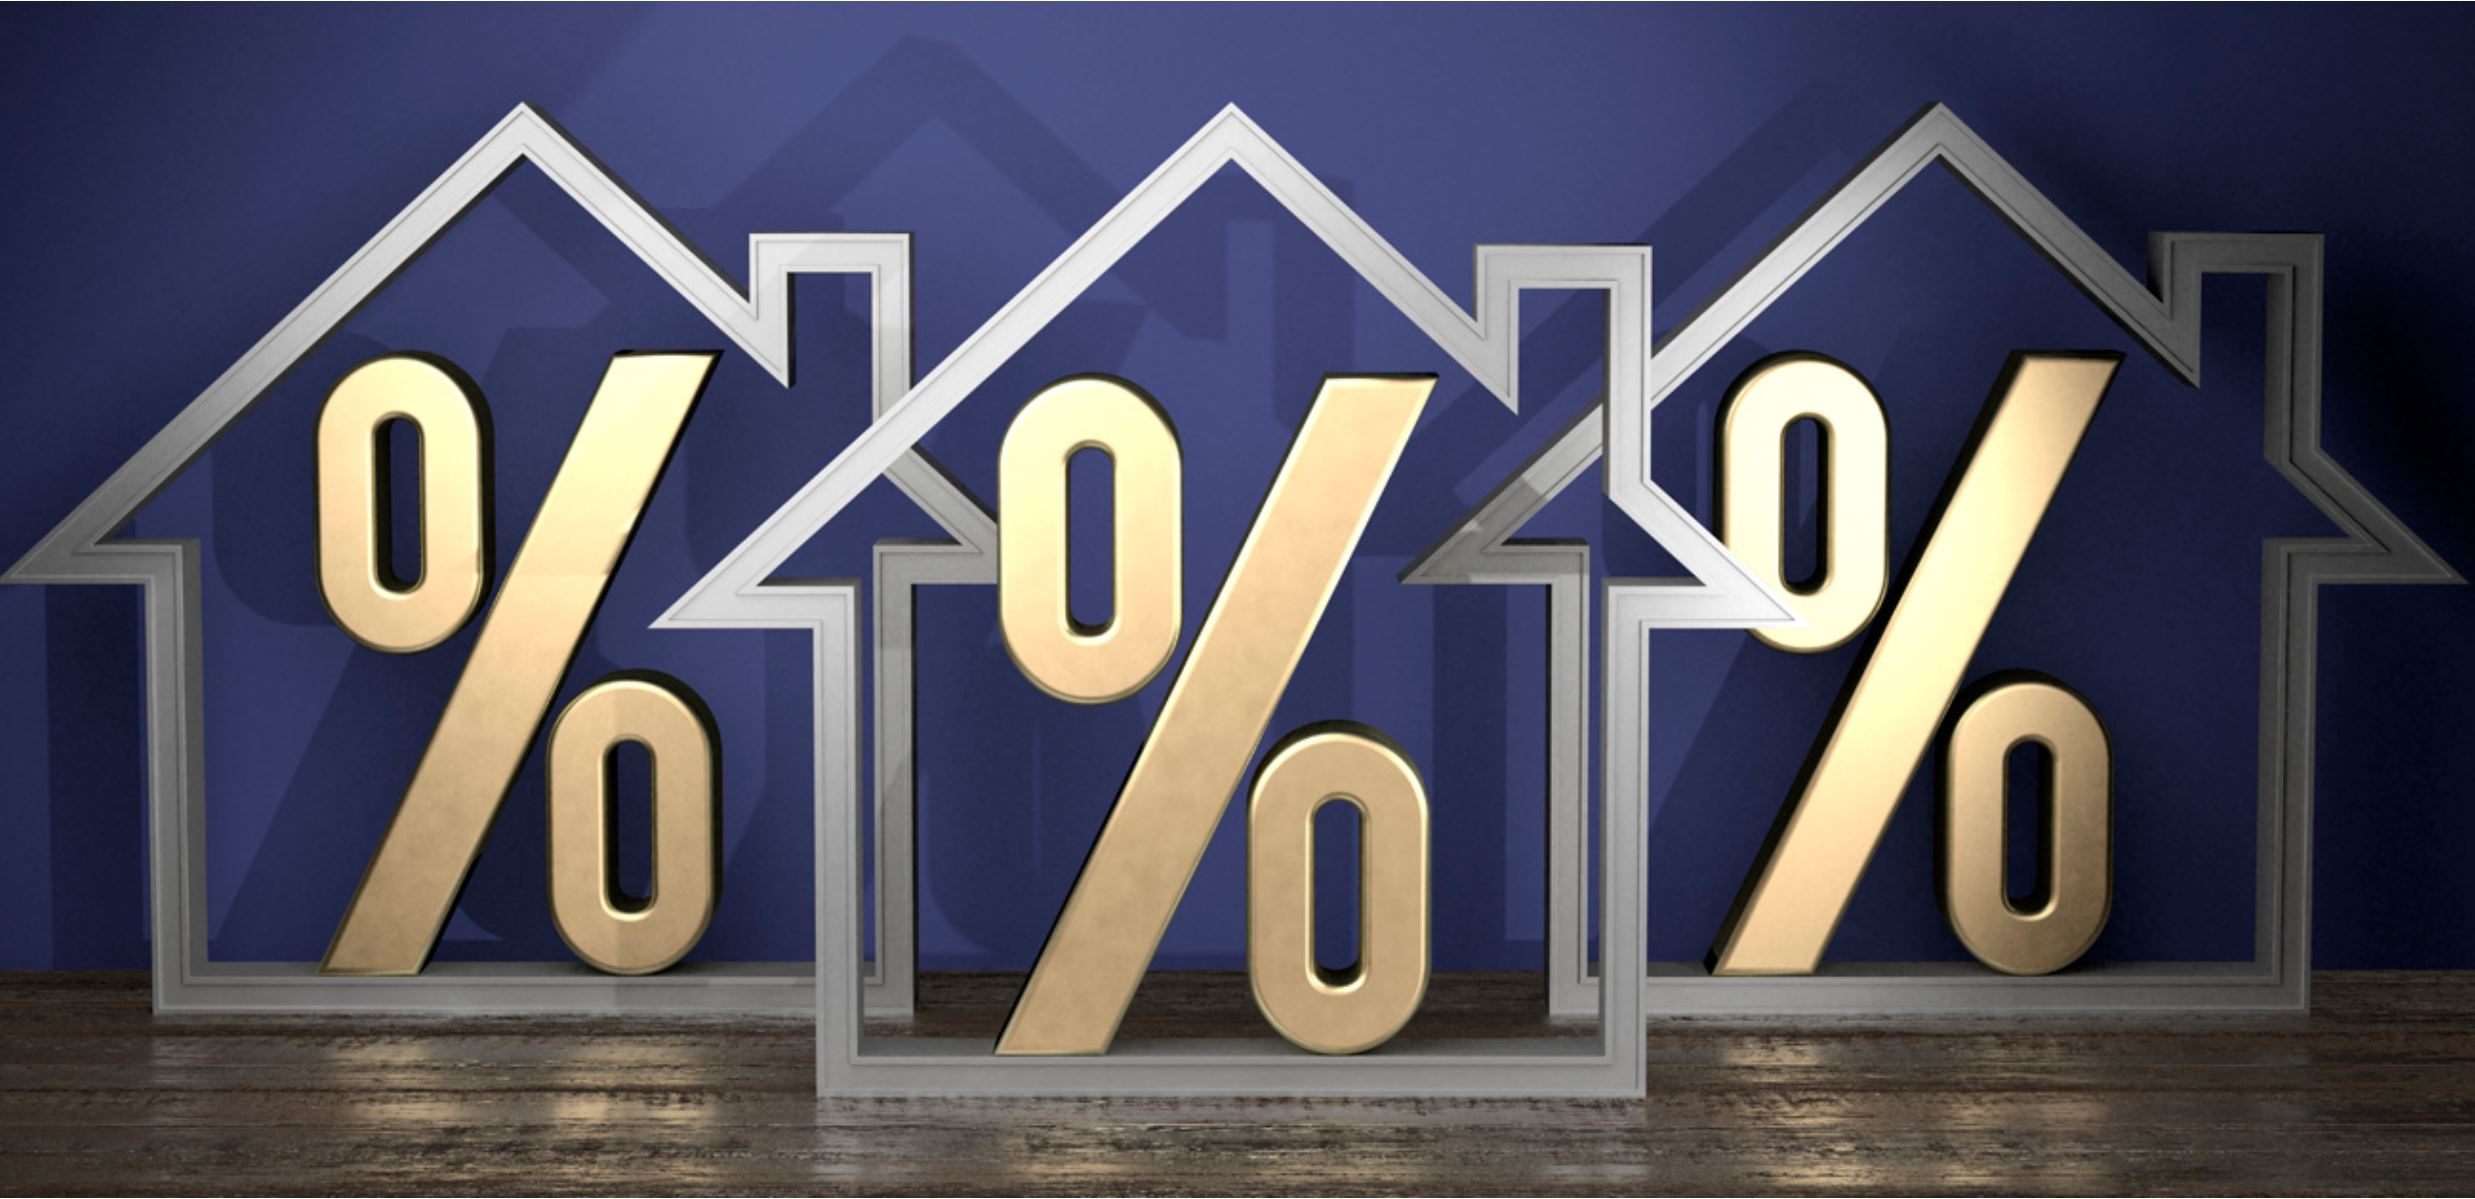 Realtor Magazine 2020 12 10 - Mortgage rates remain Low since the begining of the plandemic after going through the COVID-19 Coronavirus pandemic Hoey Team exp Realty swfl